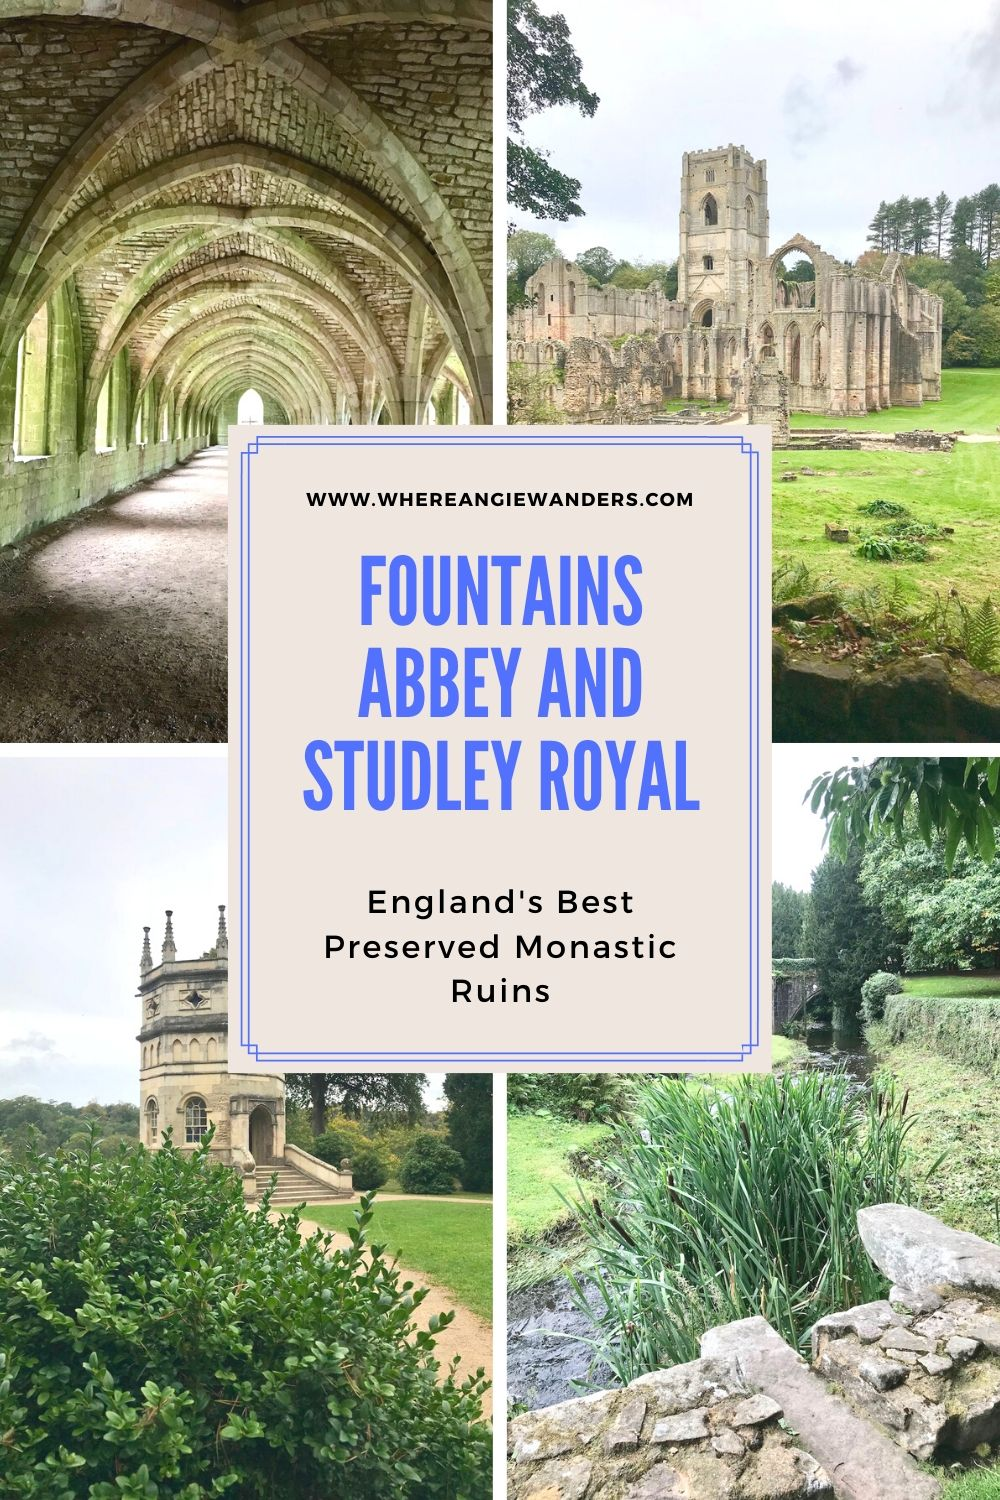 A Pinterest graphic depicting Fountains Abbey